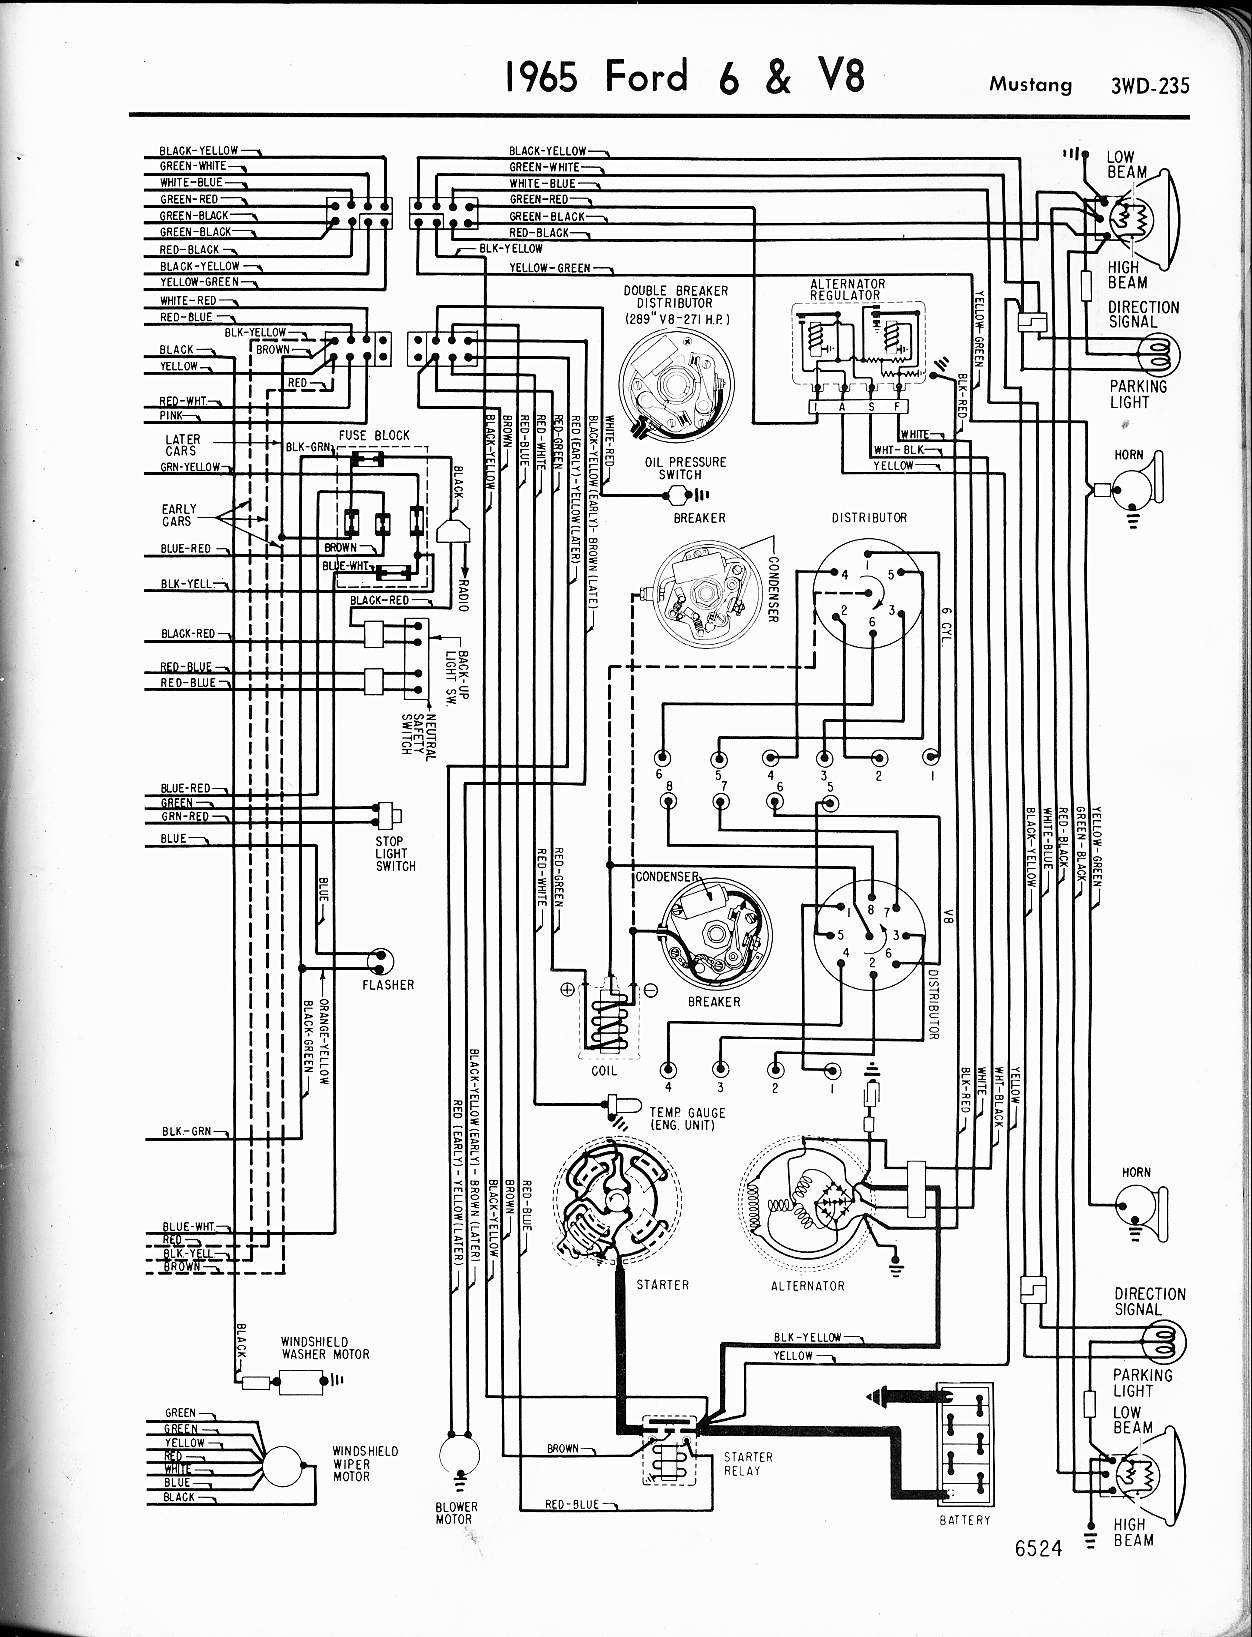 1965_mustang_wiring_2 ford diagrams old ford wiring harness at crackthecode.co